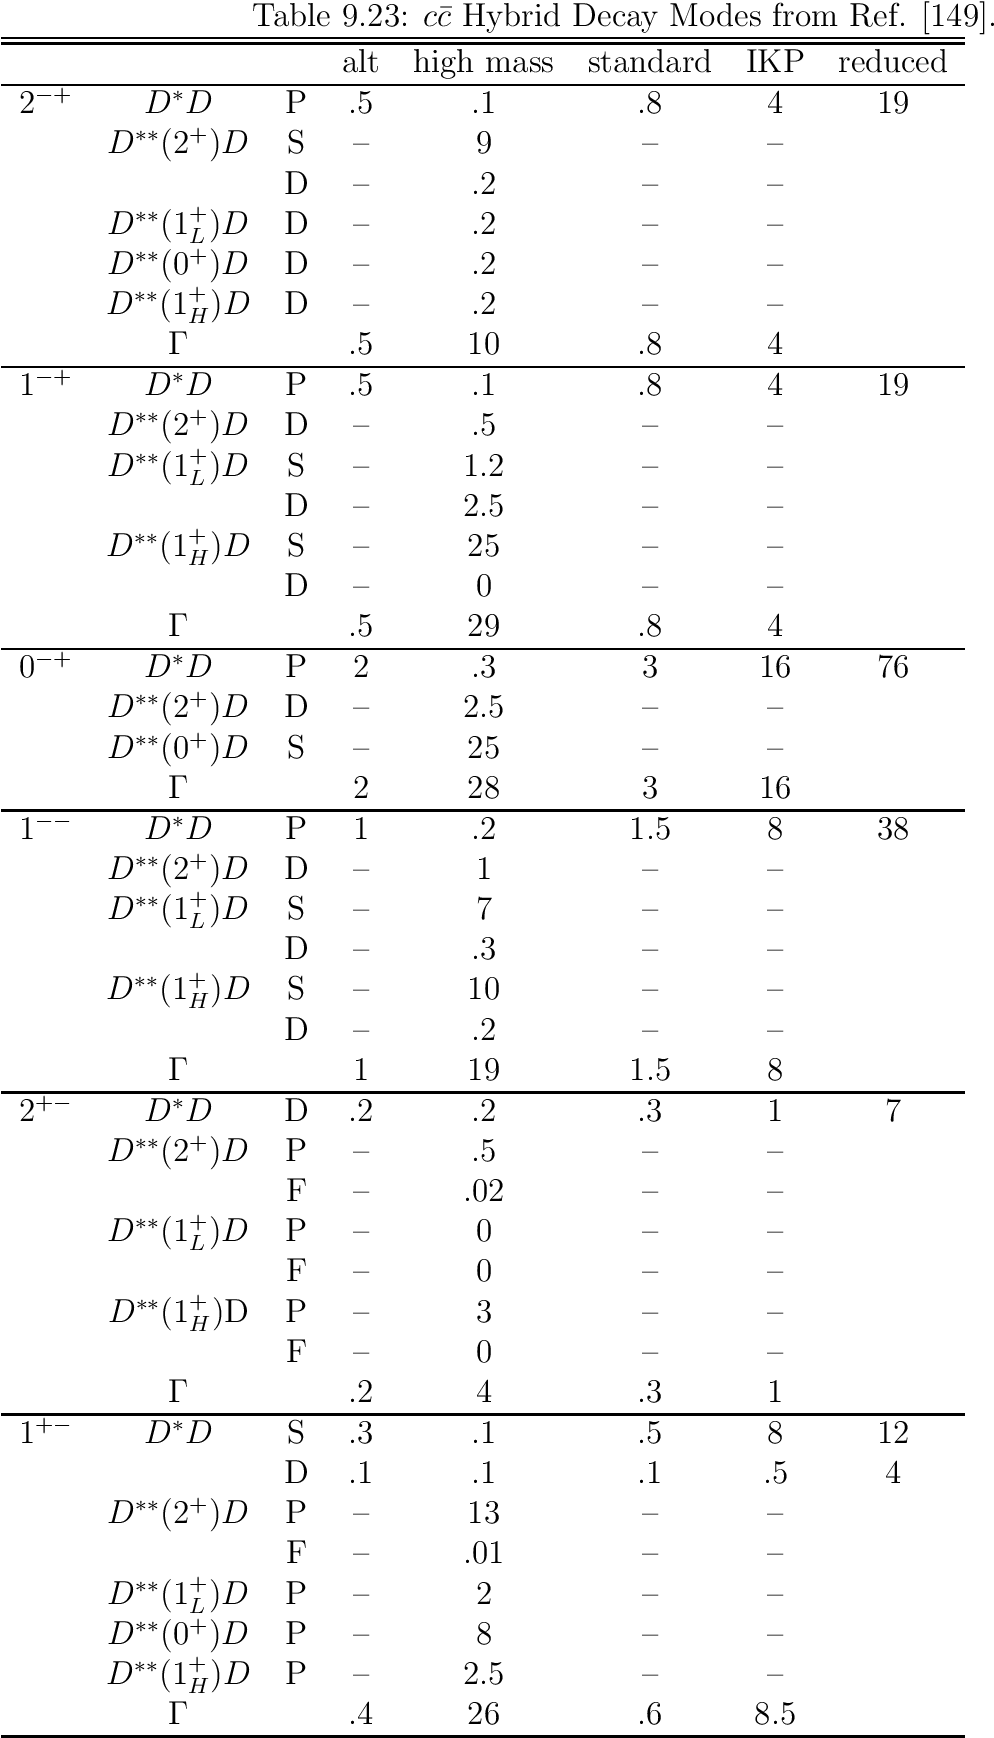 table 9.26